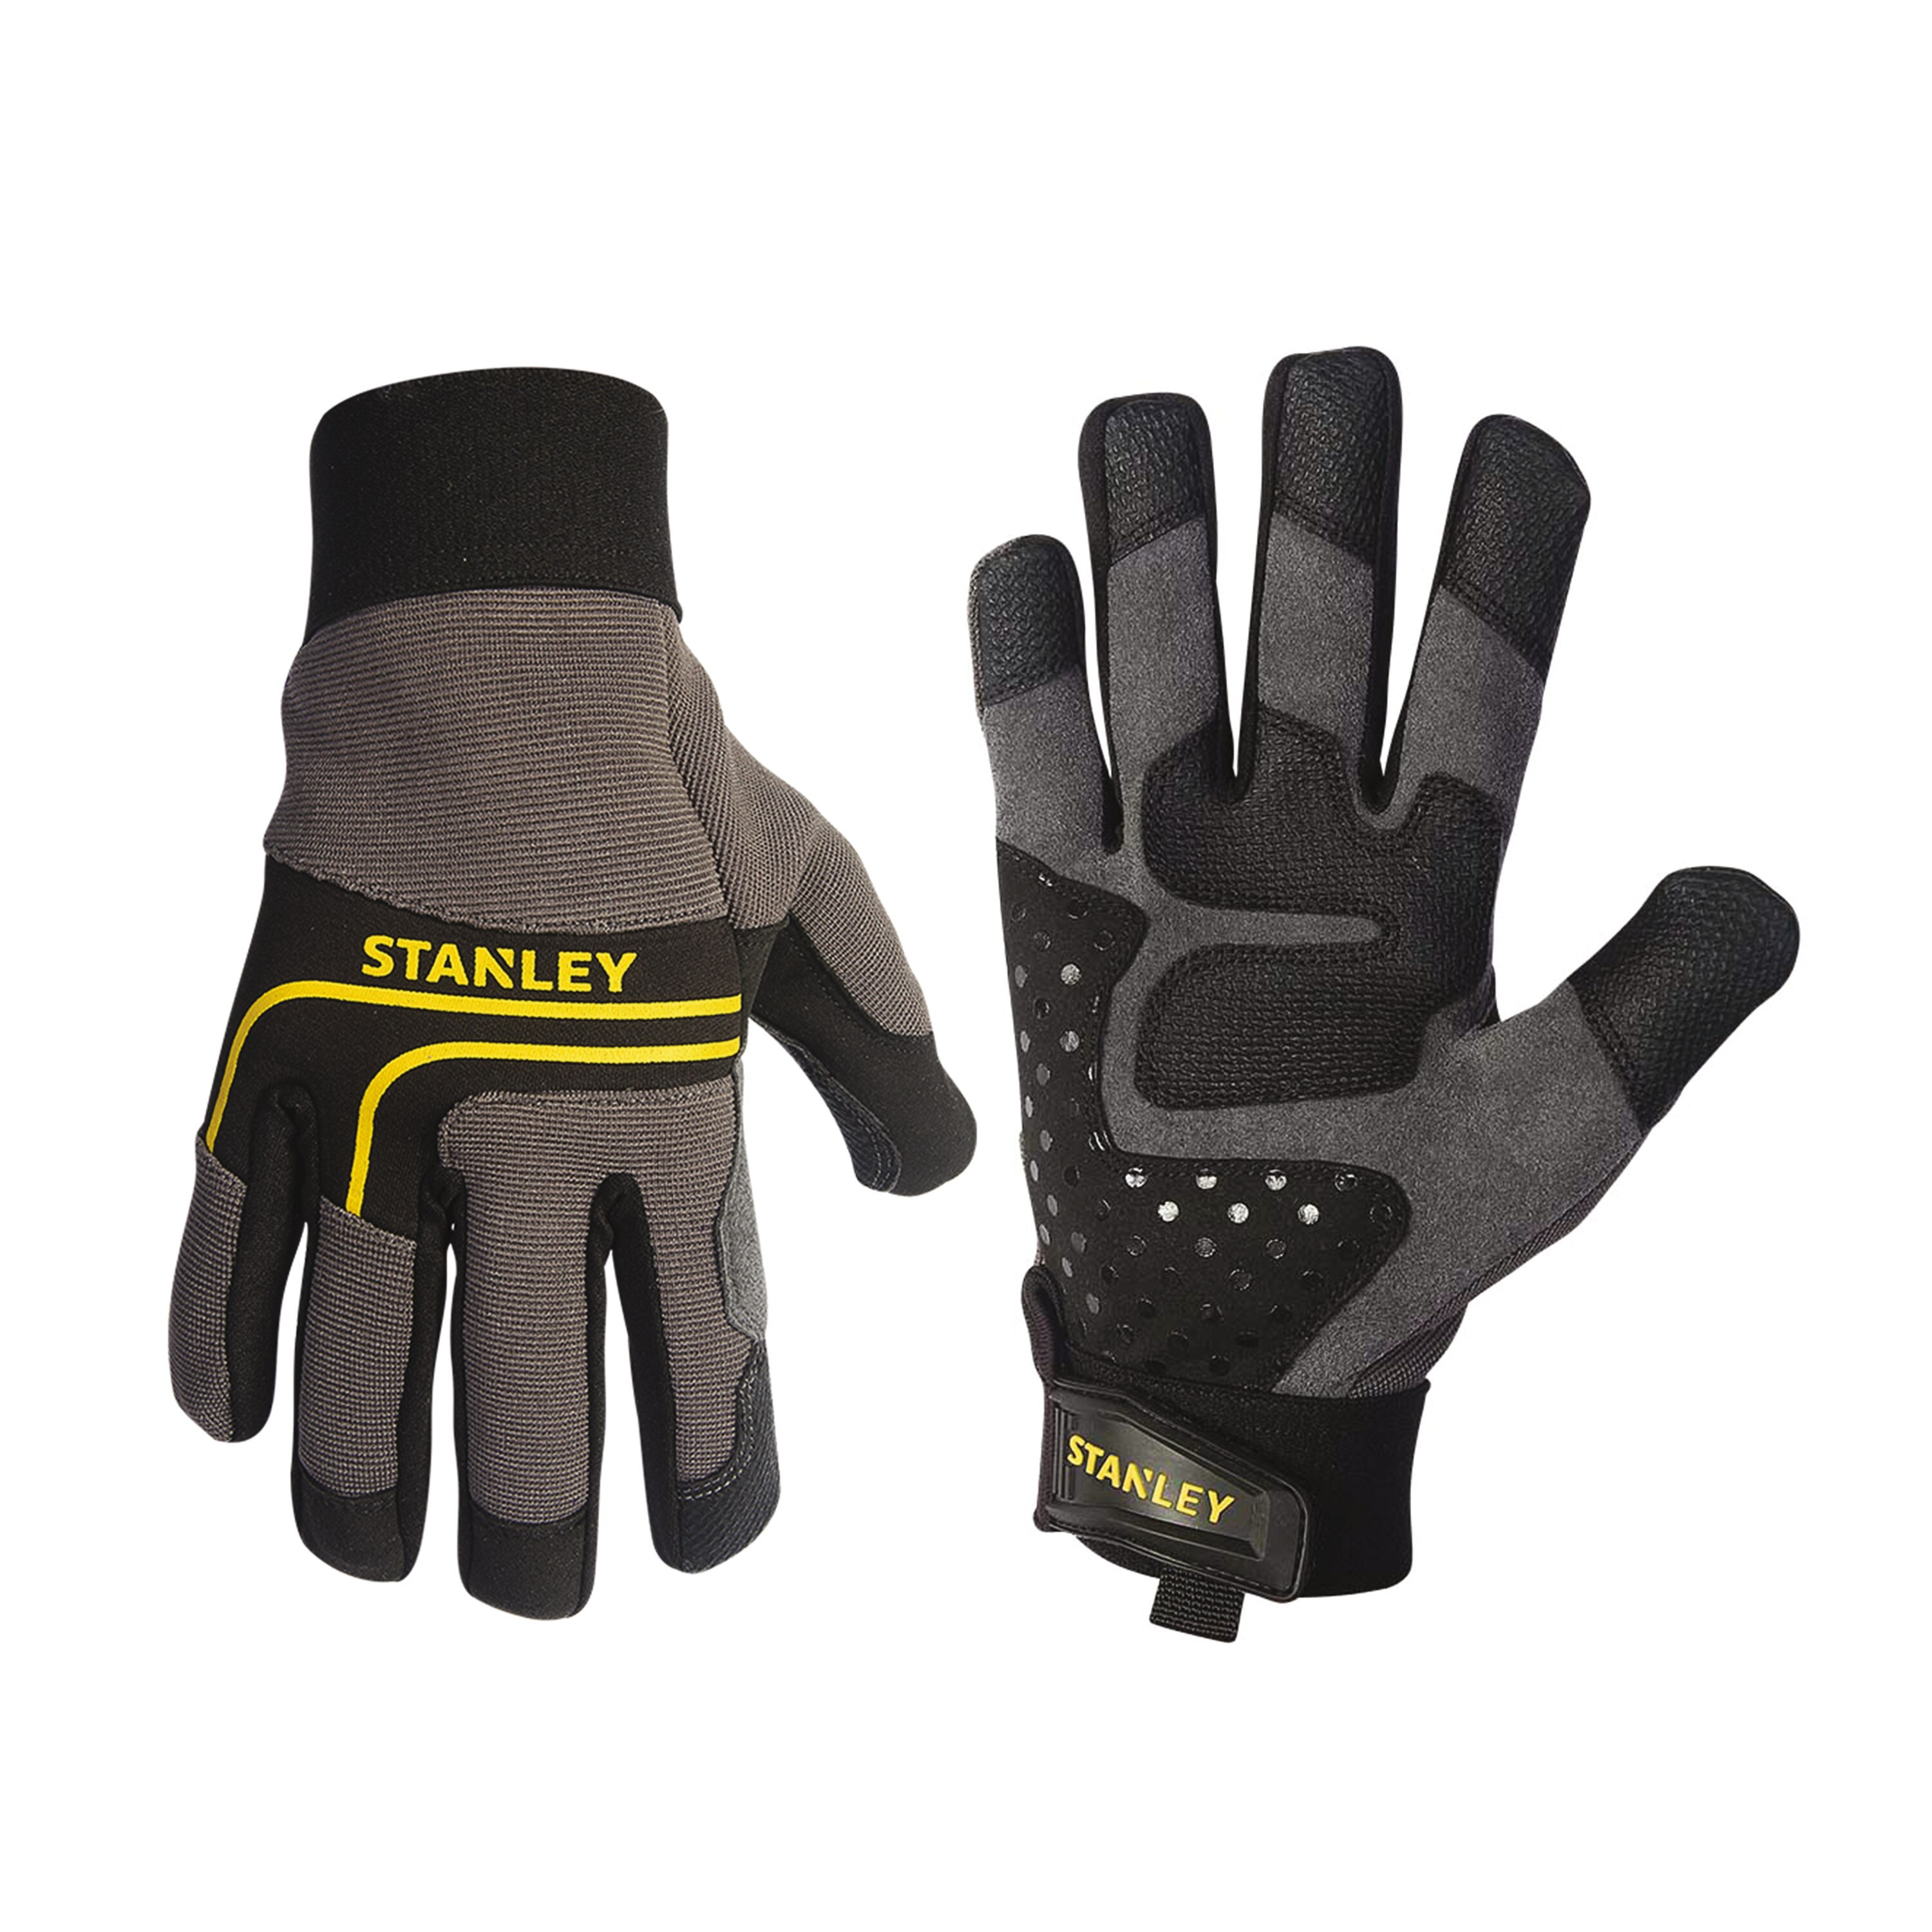 Stanley Tools - Synthetic Leather MultiPurpose Gloves with Silicone Dotting - S77652